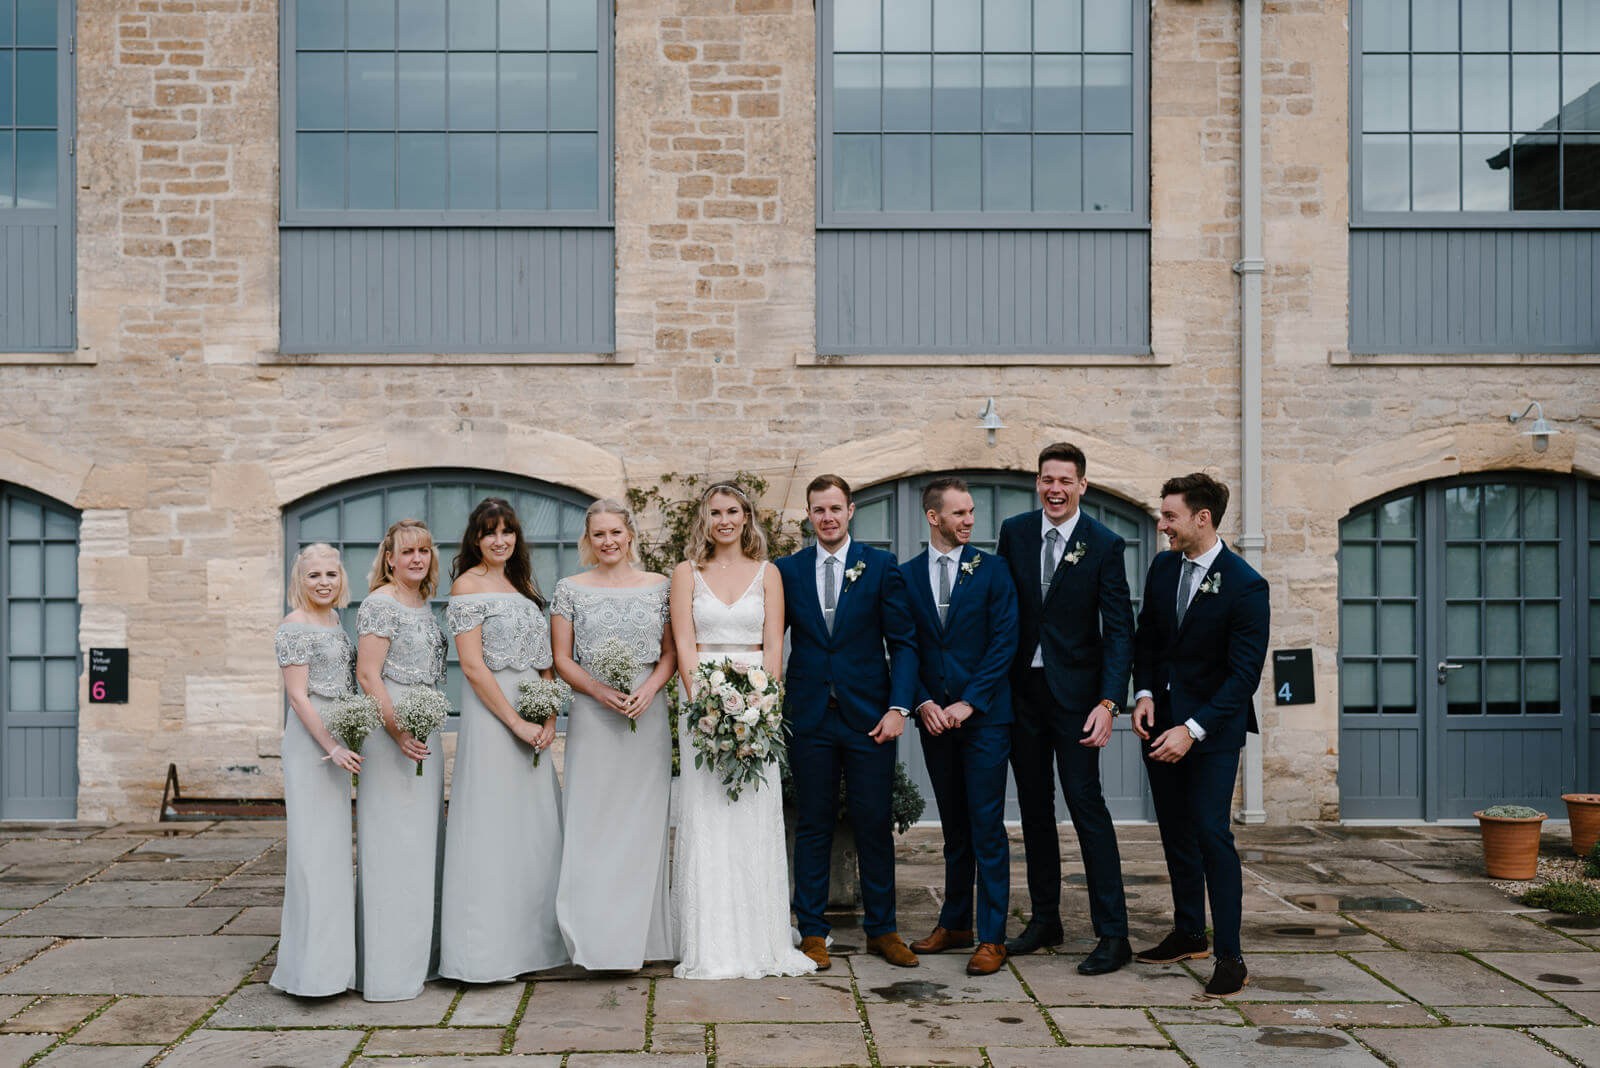 groomsmen laugh during wedding party portrait at Wiltshire venue, Glove Factory Studios